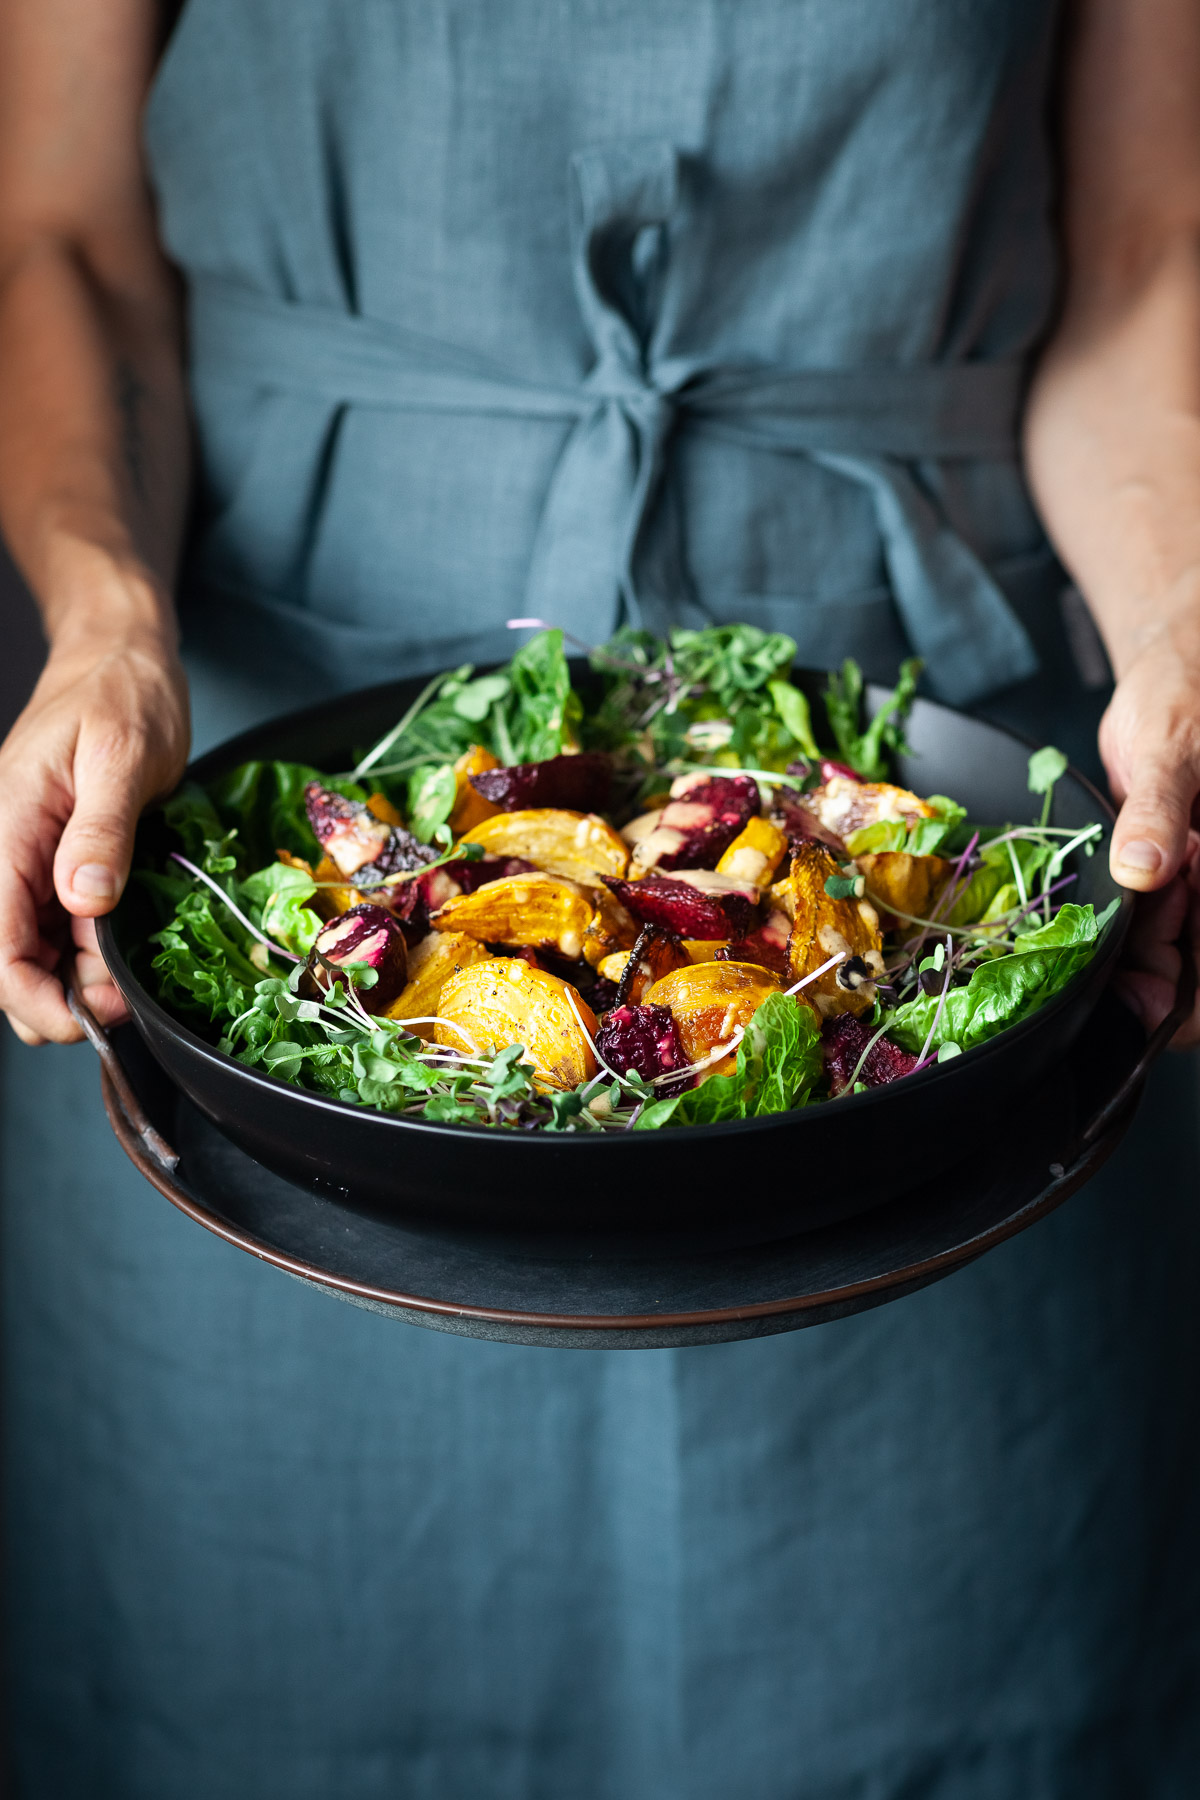 A person in a blue apron holding a bowl of roasted beet salad.